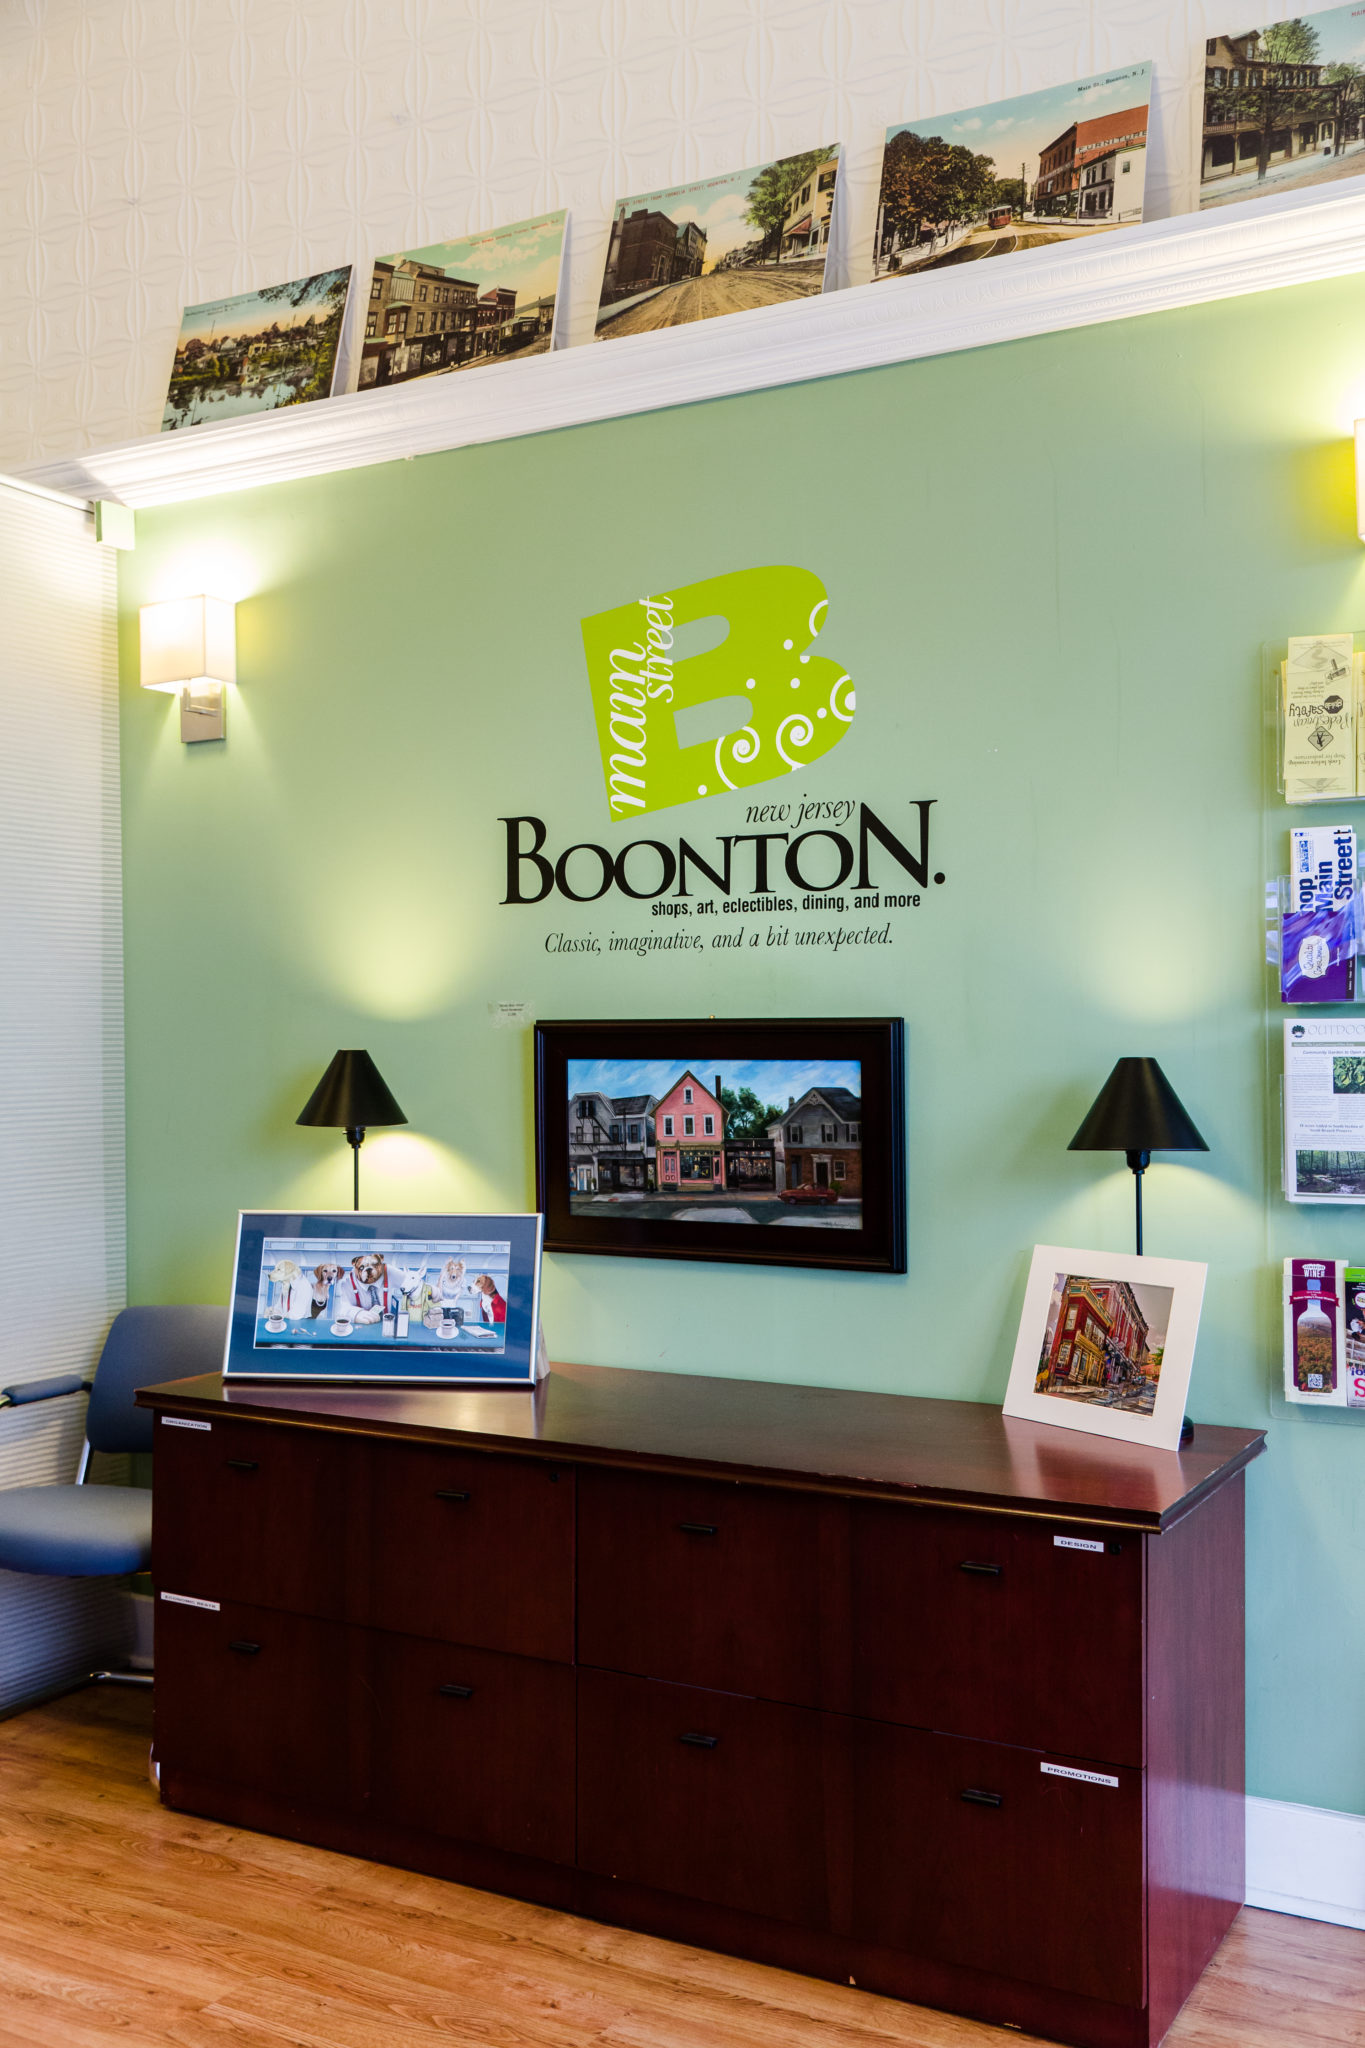 Boonton Main Street office with logo on wall